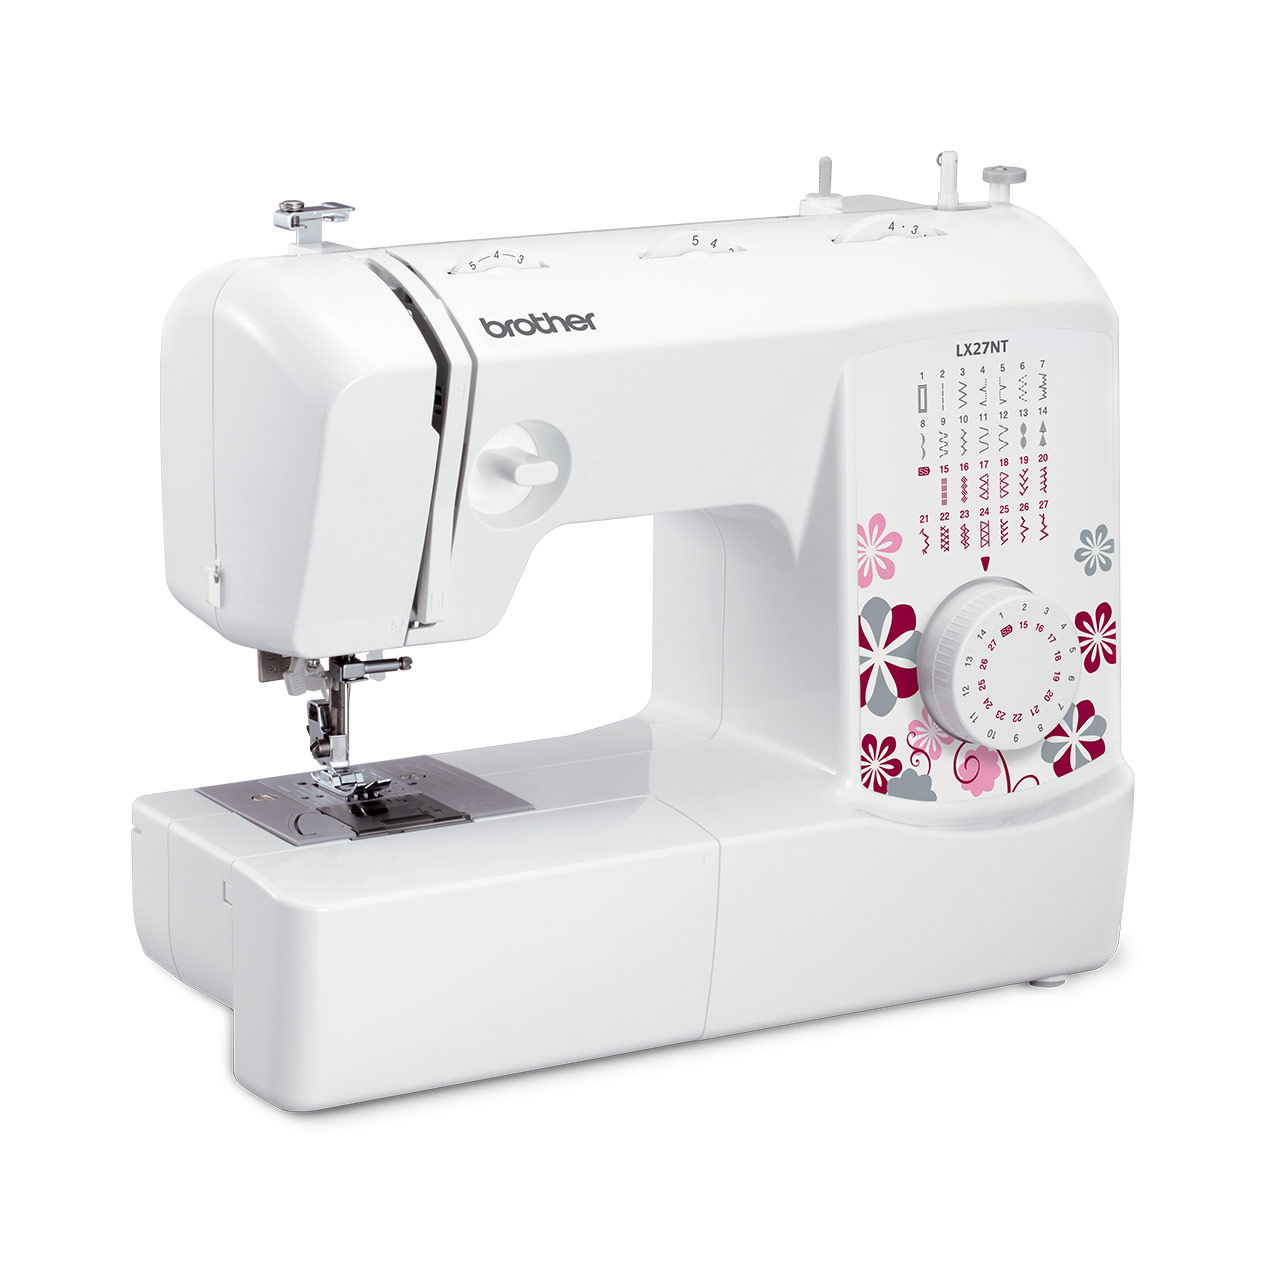 The best sewing machine in melaka